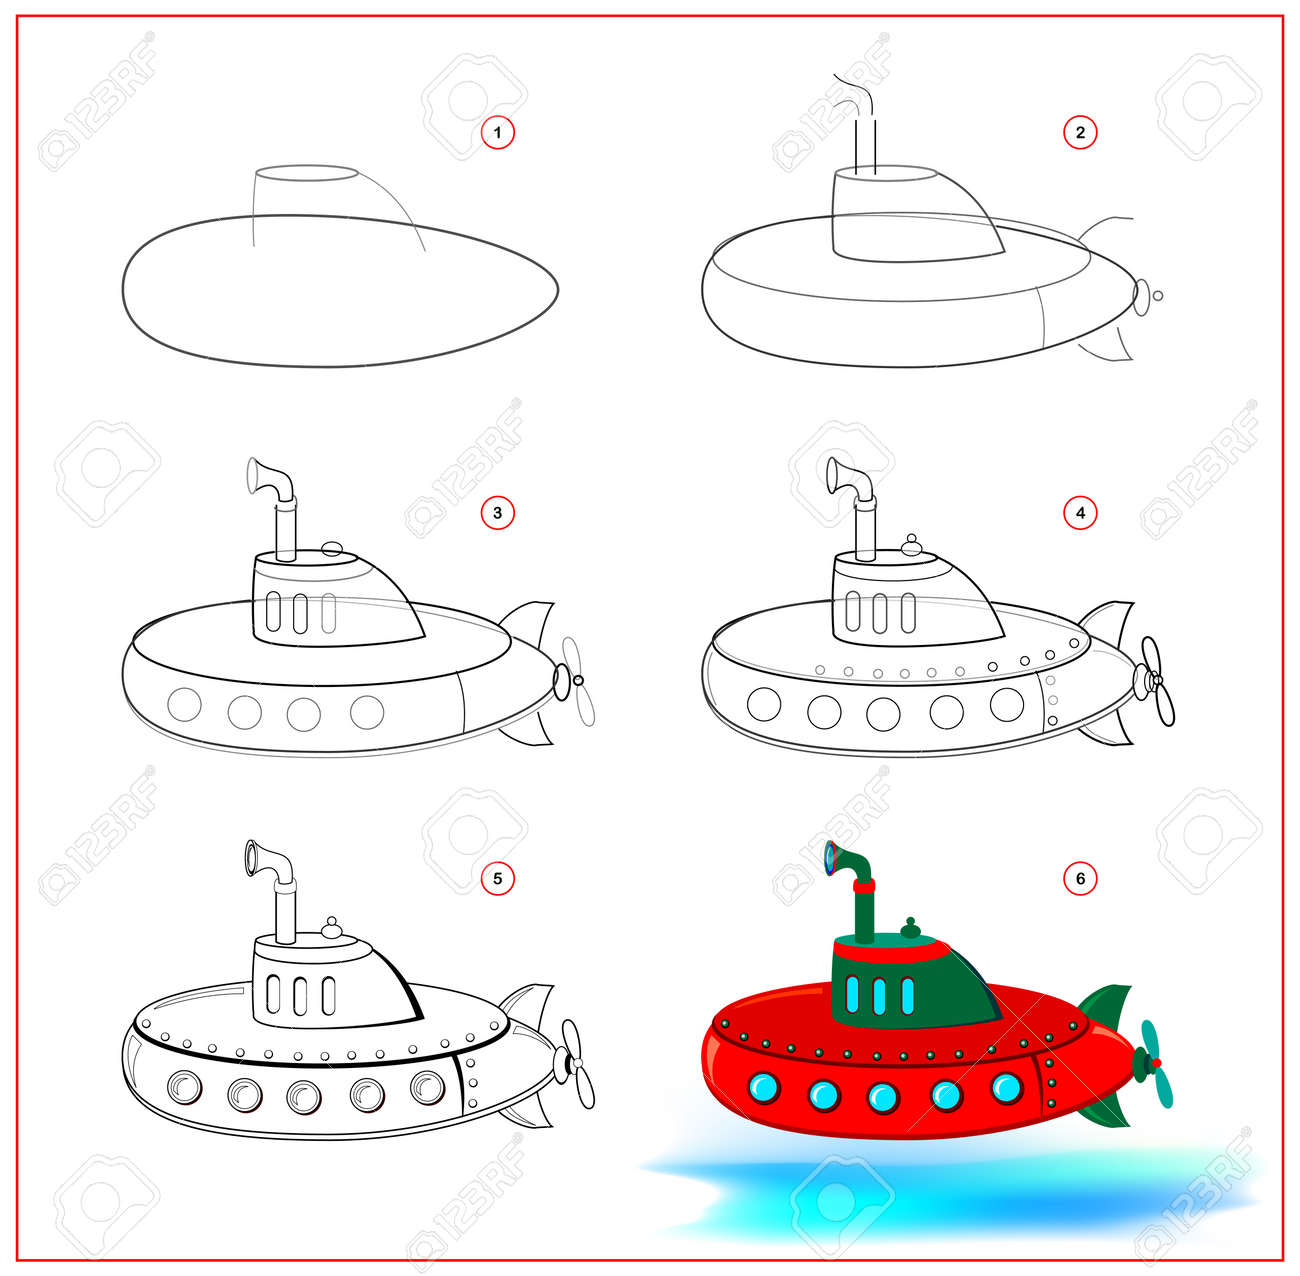 Page shows how to learn to draw step by step toy submarine. Developing children skills for drawing and coloring. Printable worksheet for kids school exercise book. Flat vector illustration. - 170074249